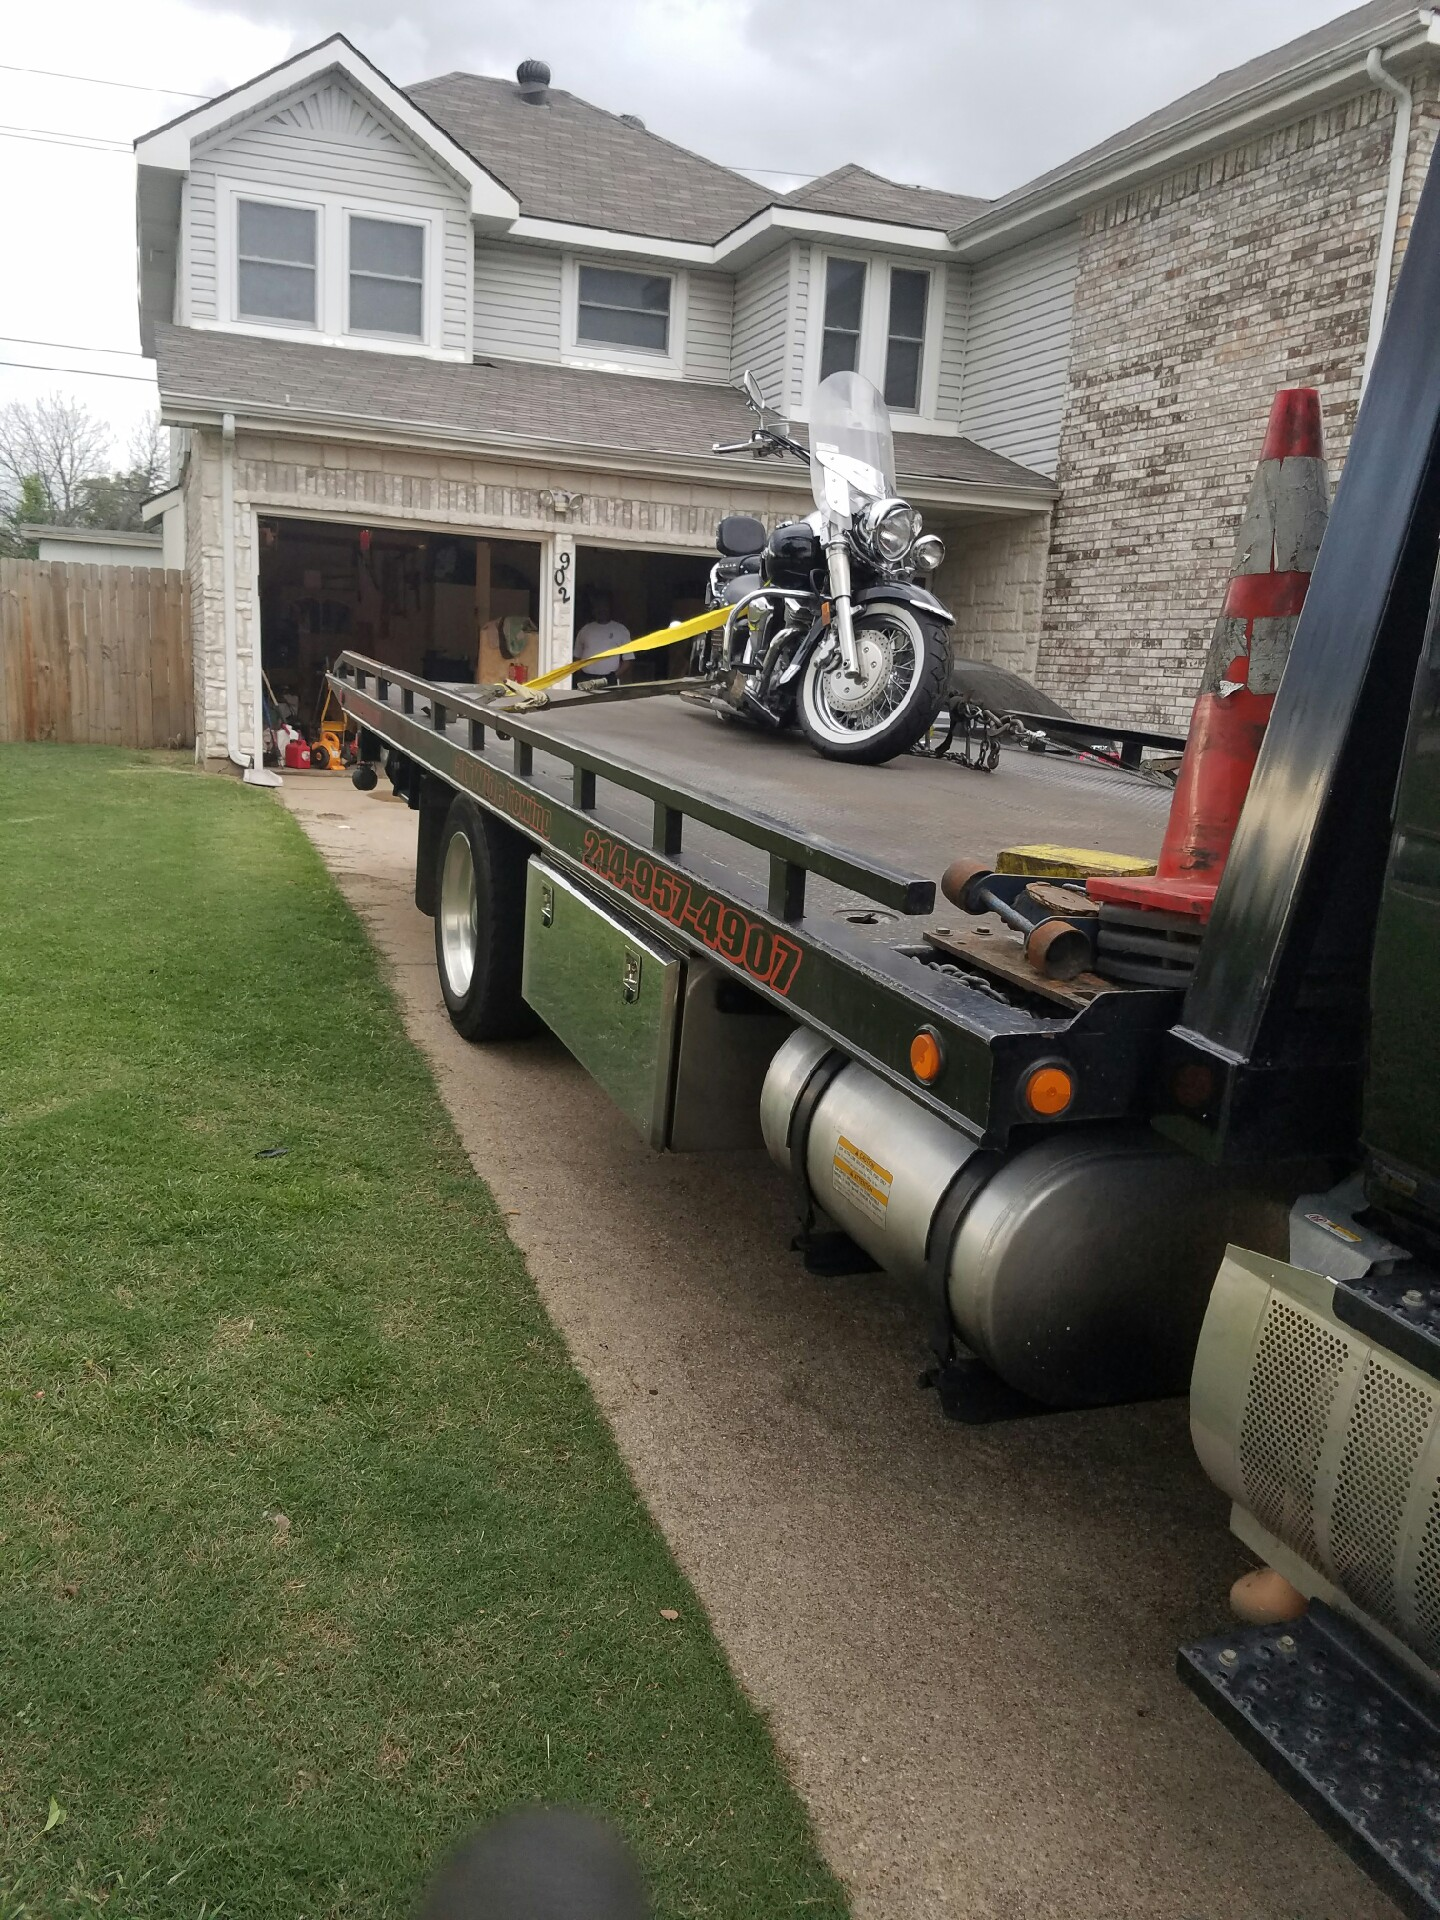 Citywide Towing Service of Dallas, TX